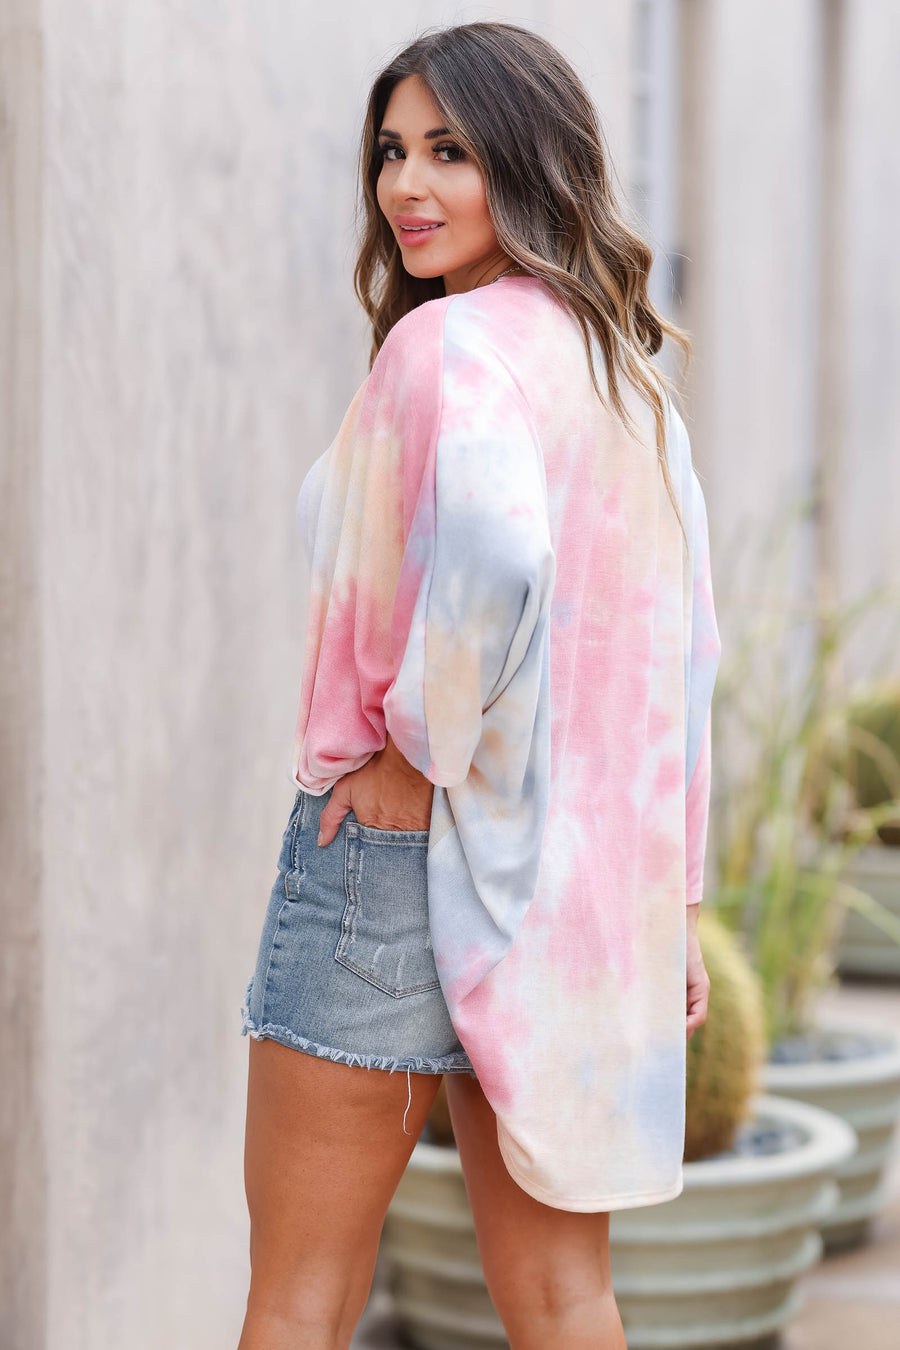 CBRAND Brighter Days Ahead Tie Dye Kimono - Coral closet candy women's trendy colorful dolman sleeve open front kimono front